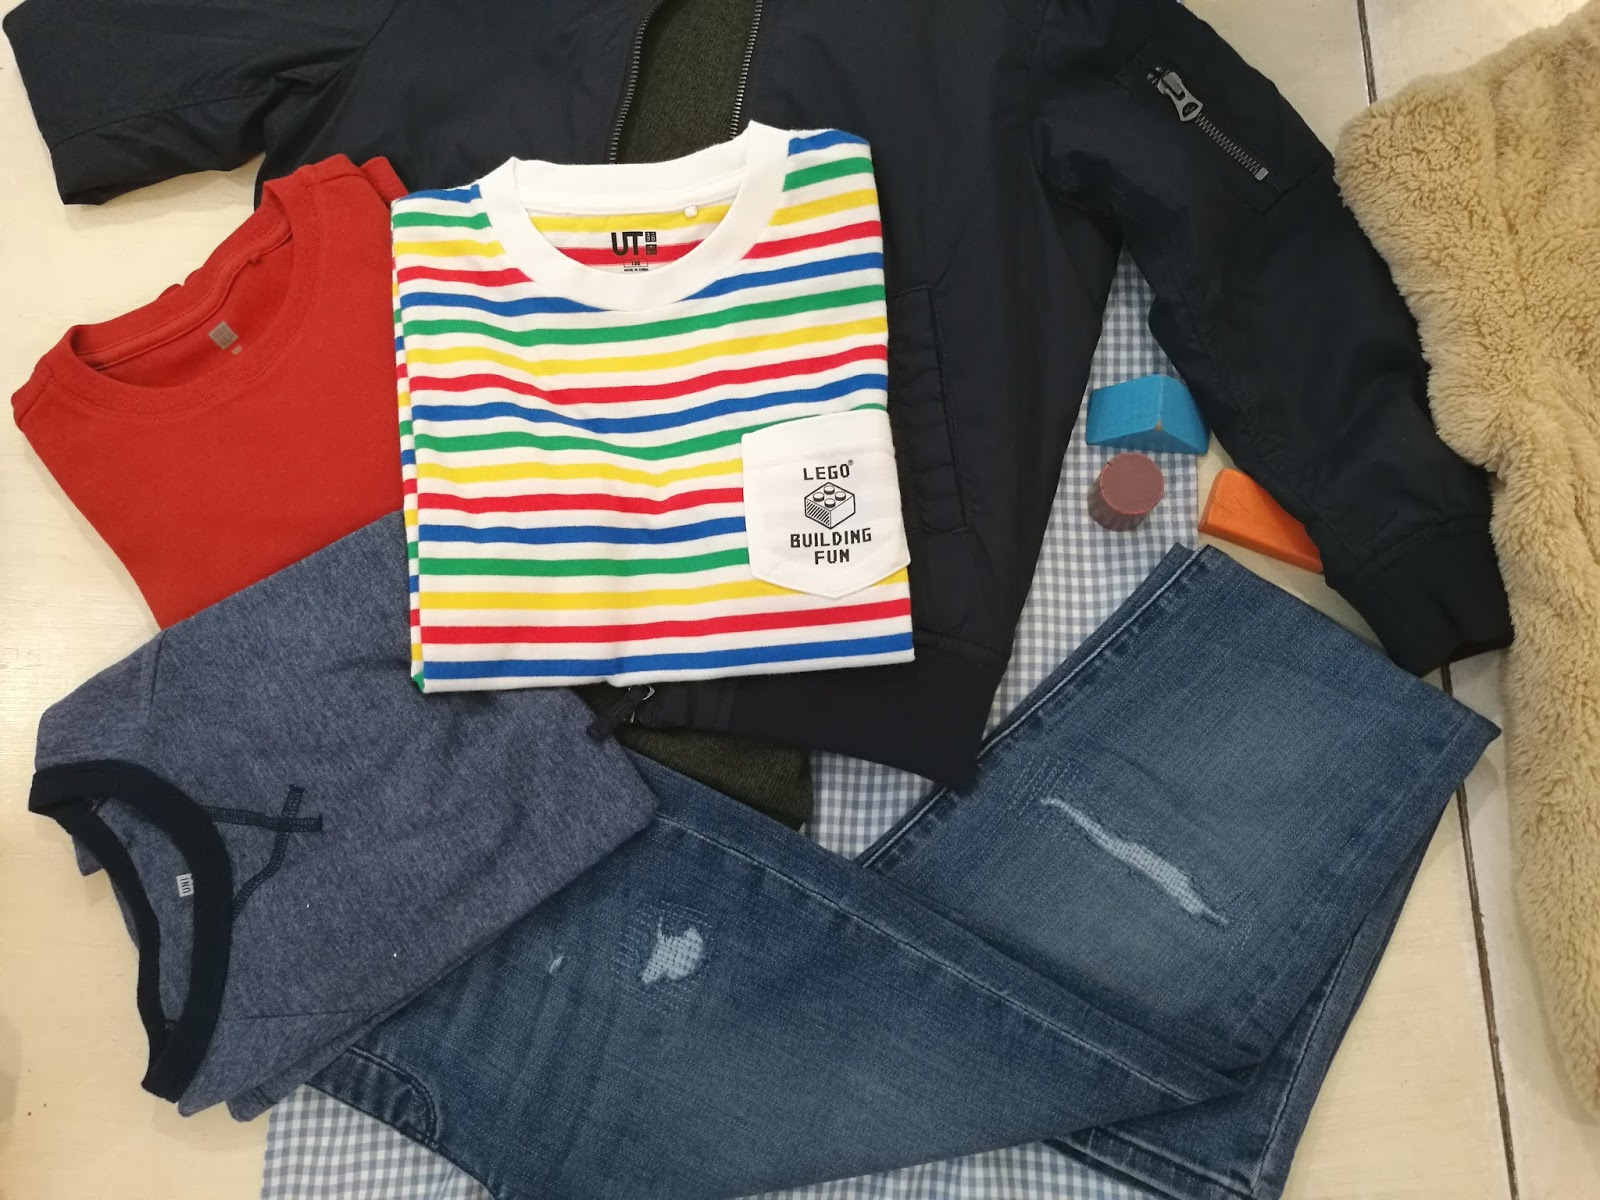 c4a59524c1638d UNIQLO is a brand that always designs functional, high-quality clothes that  keep all our bodies able and mind at ease. Which is why, they are one of my  ...